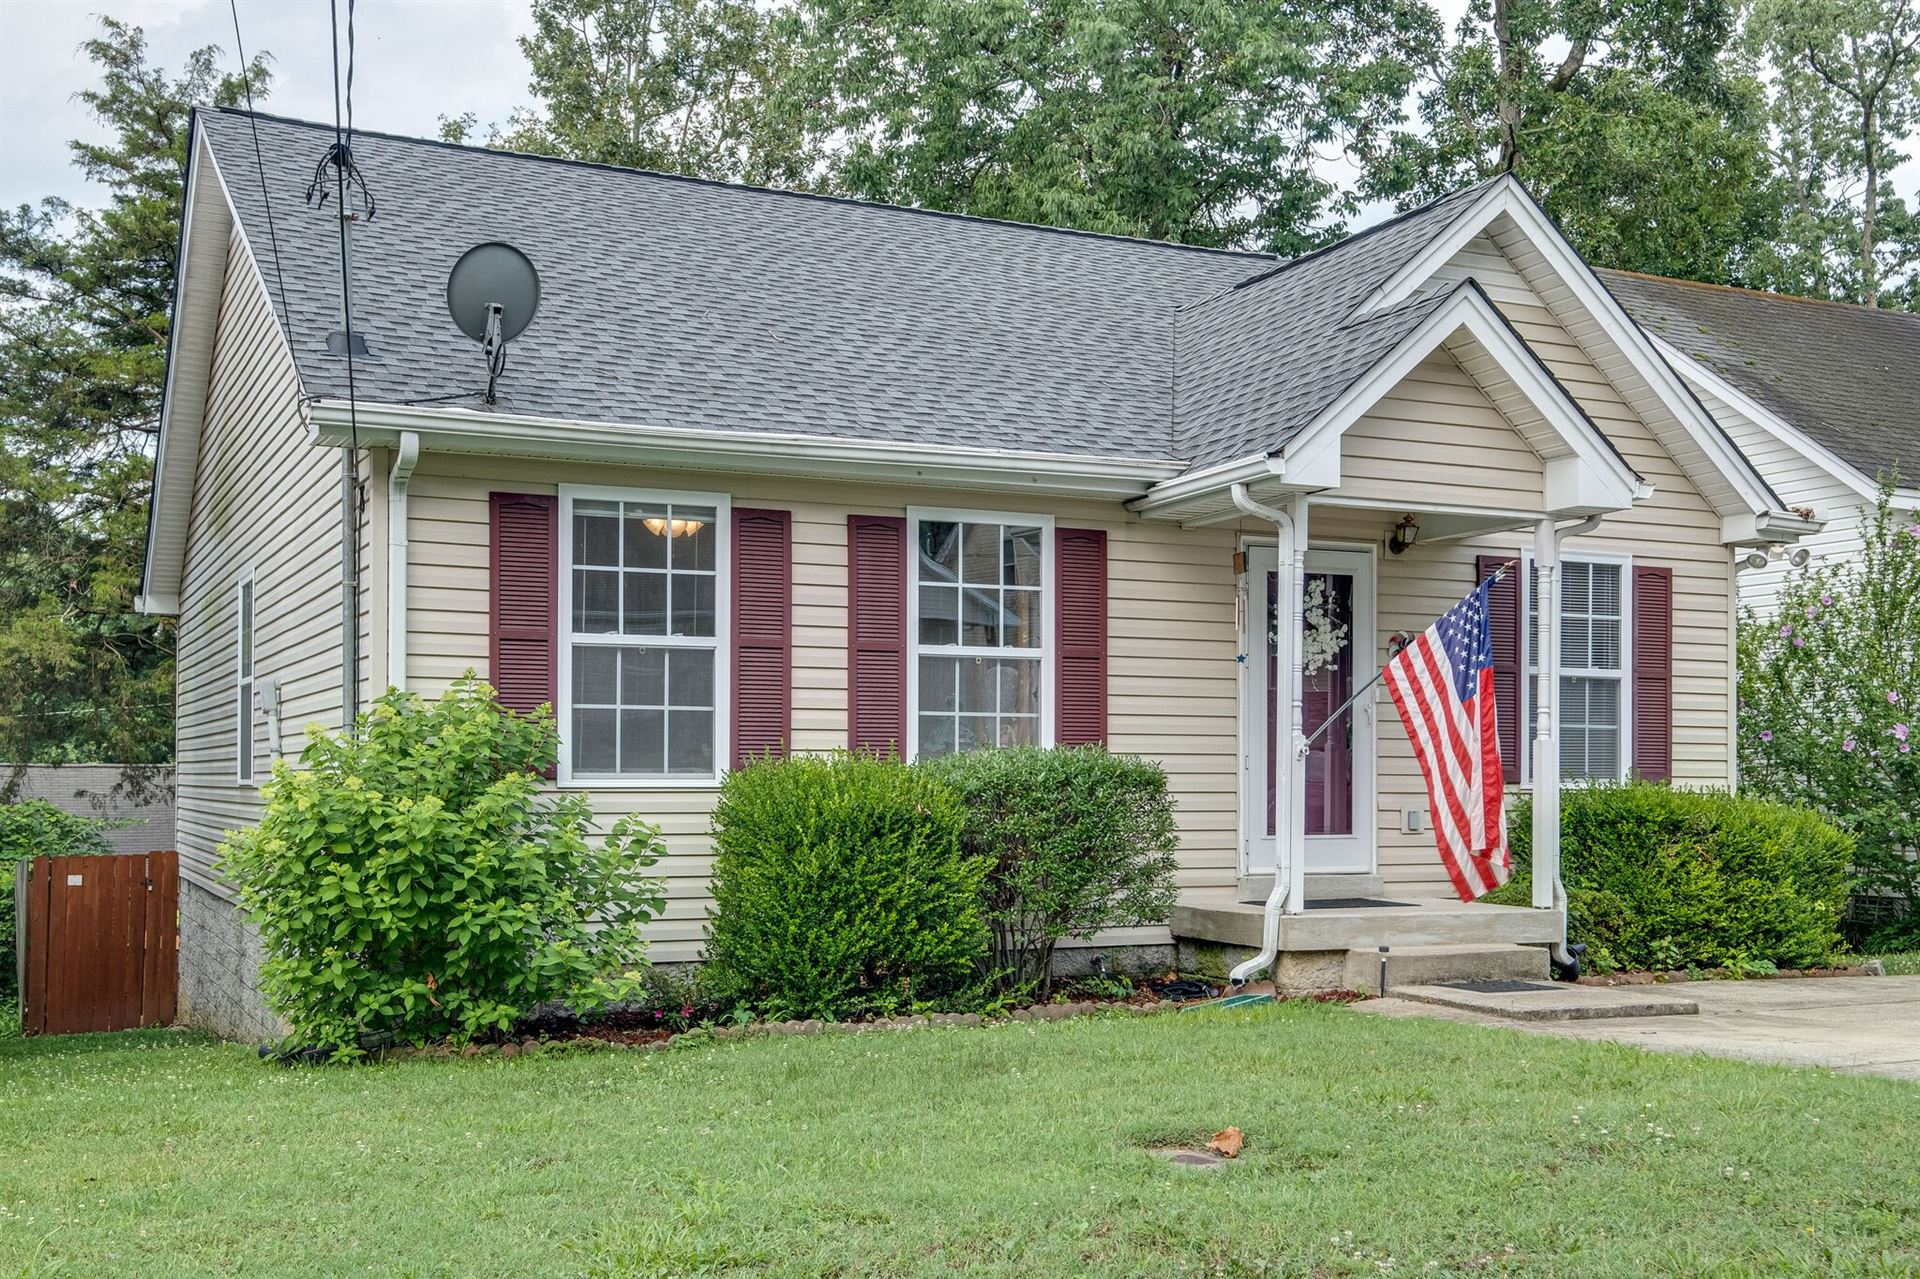 Photo of 5117 Greer Station Dr, Hermitage, TN 37076 (MLS # 2167856)